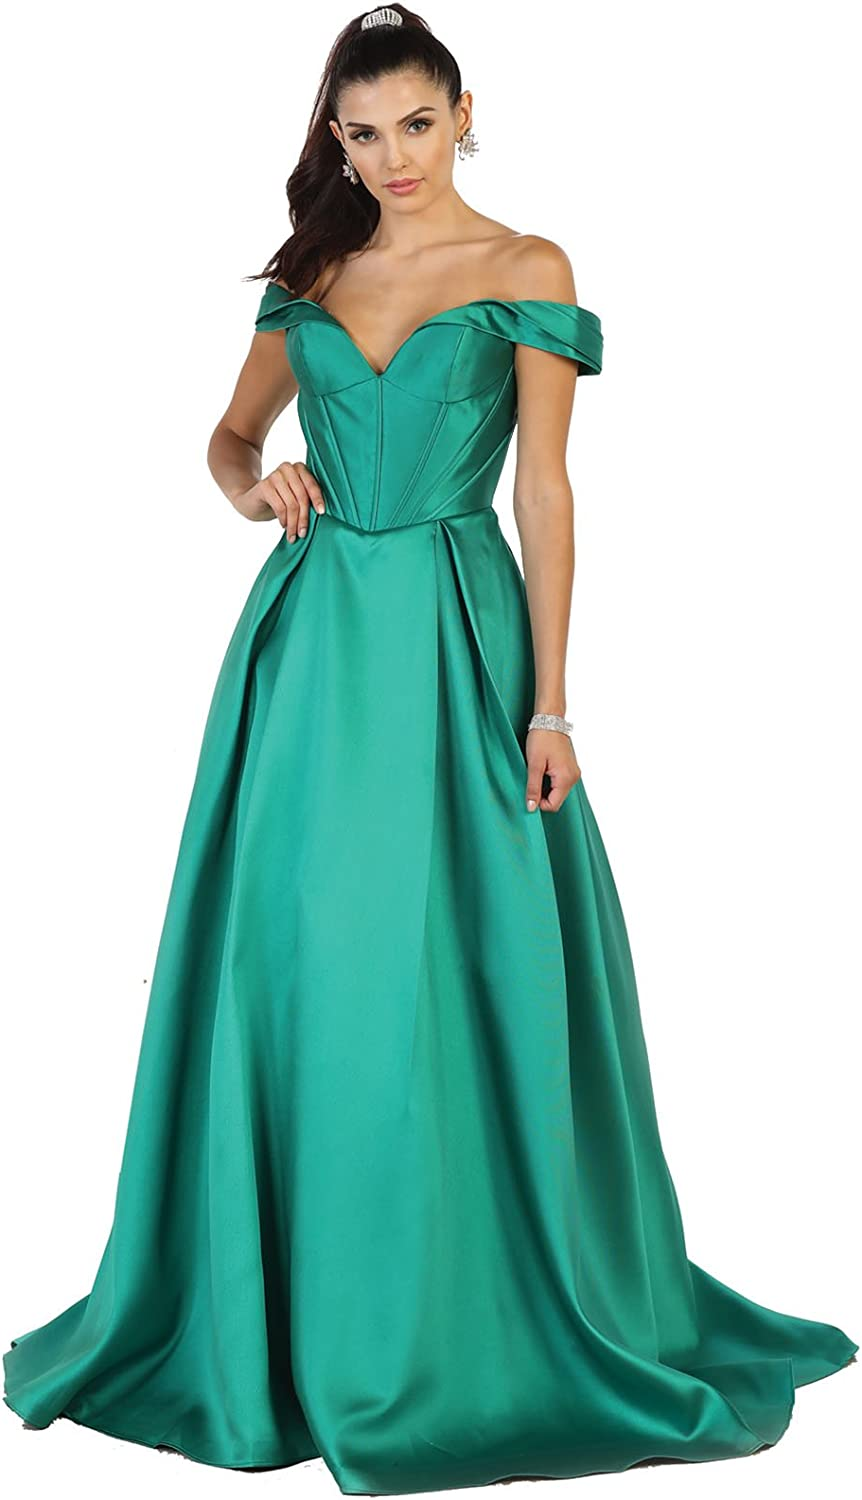 Royal Queen RQ7508 Beauty Pageant Off The Shoulder Evening Gown